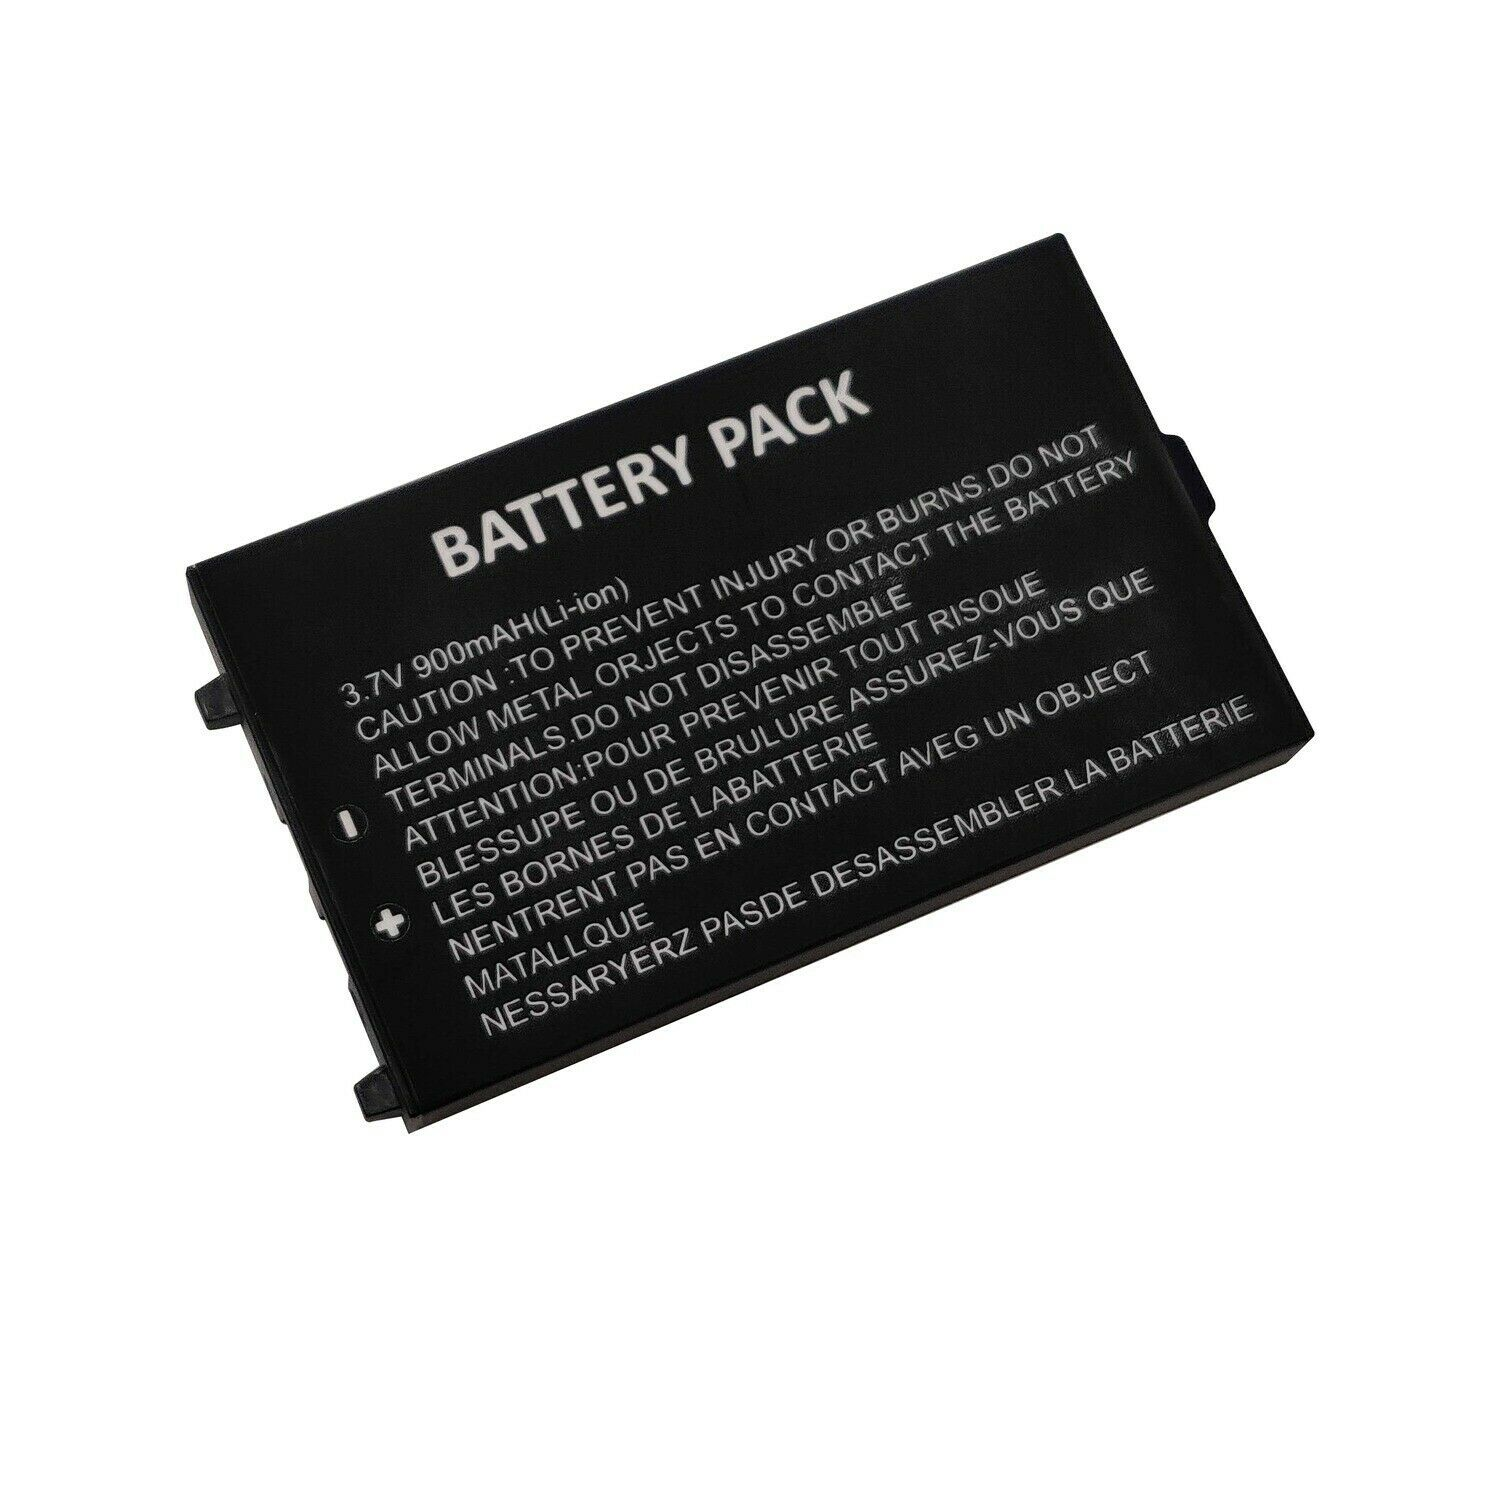 Gameboy Advance SP Replacement Battery High Quality 3.7V 900mAh Rechargeable